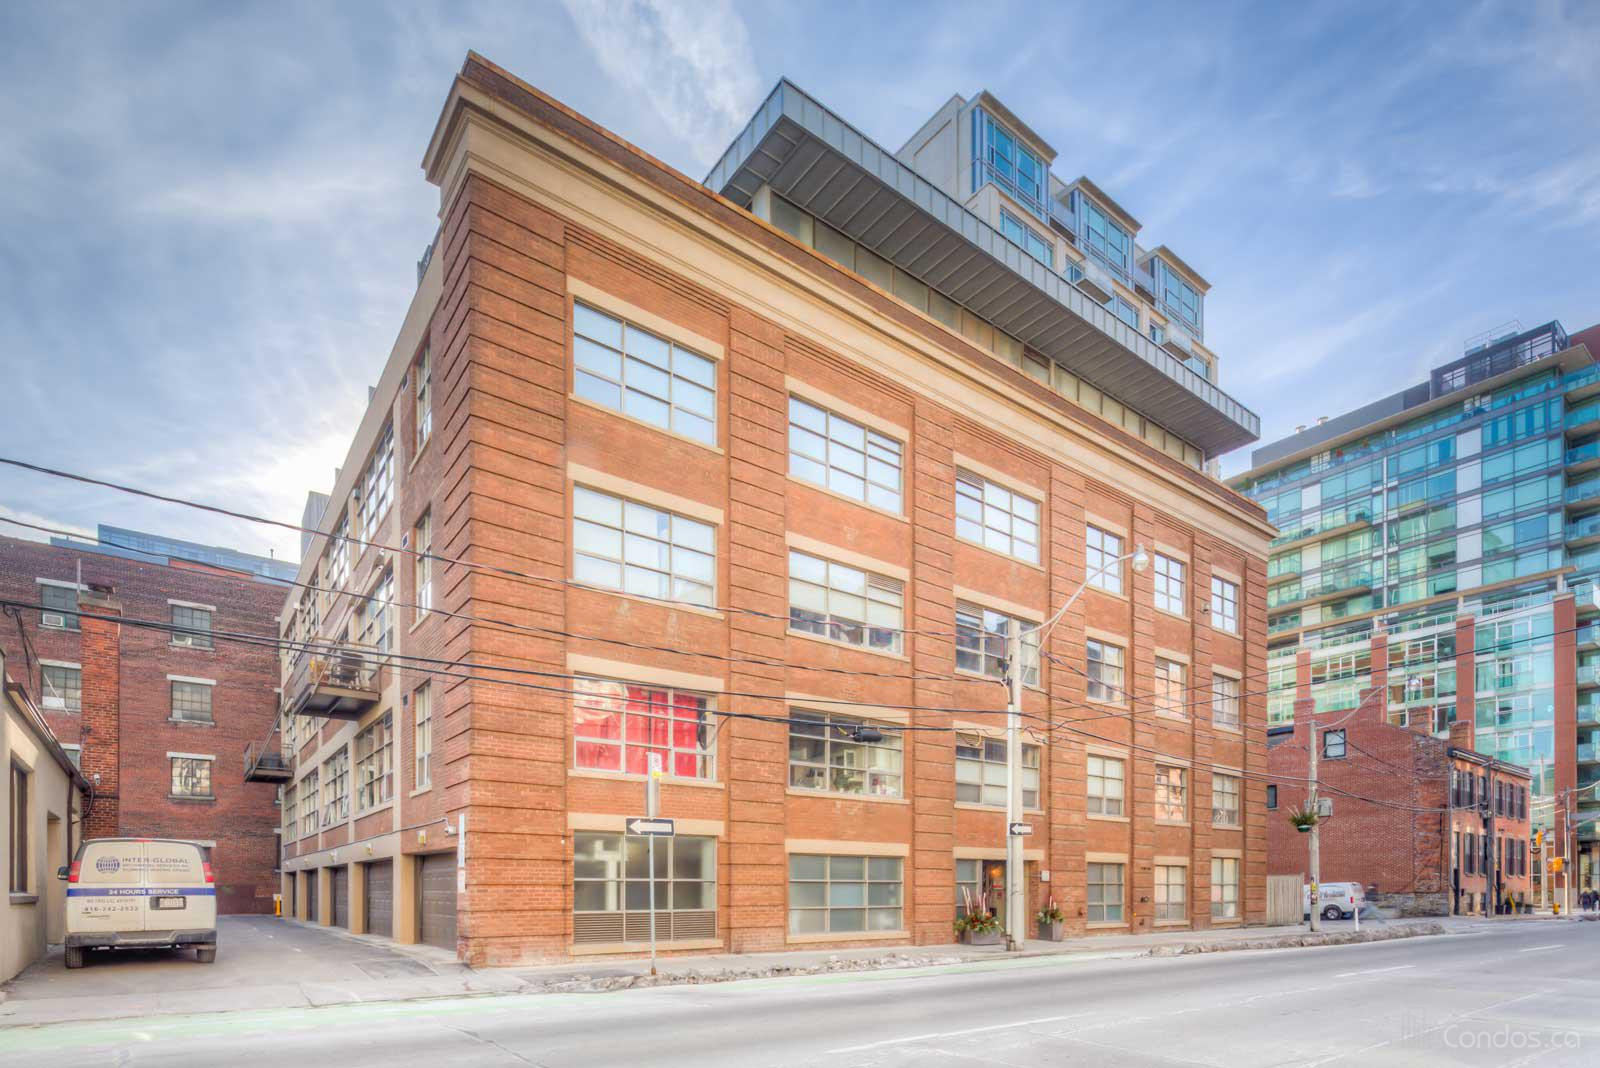 Liberty Lofts at 383 Adelaide St E, Toronto 1